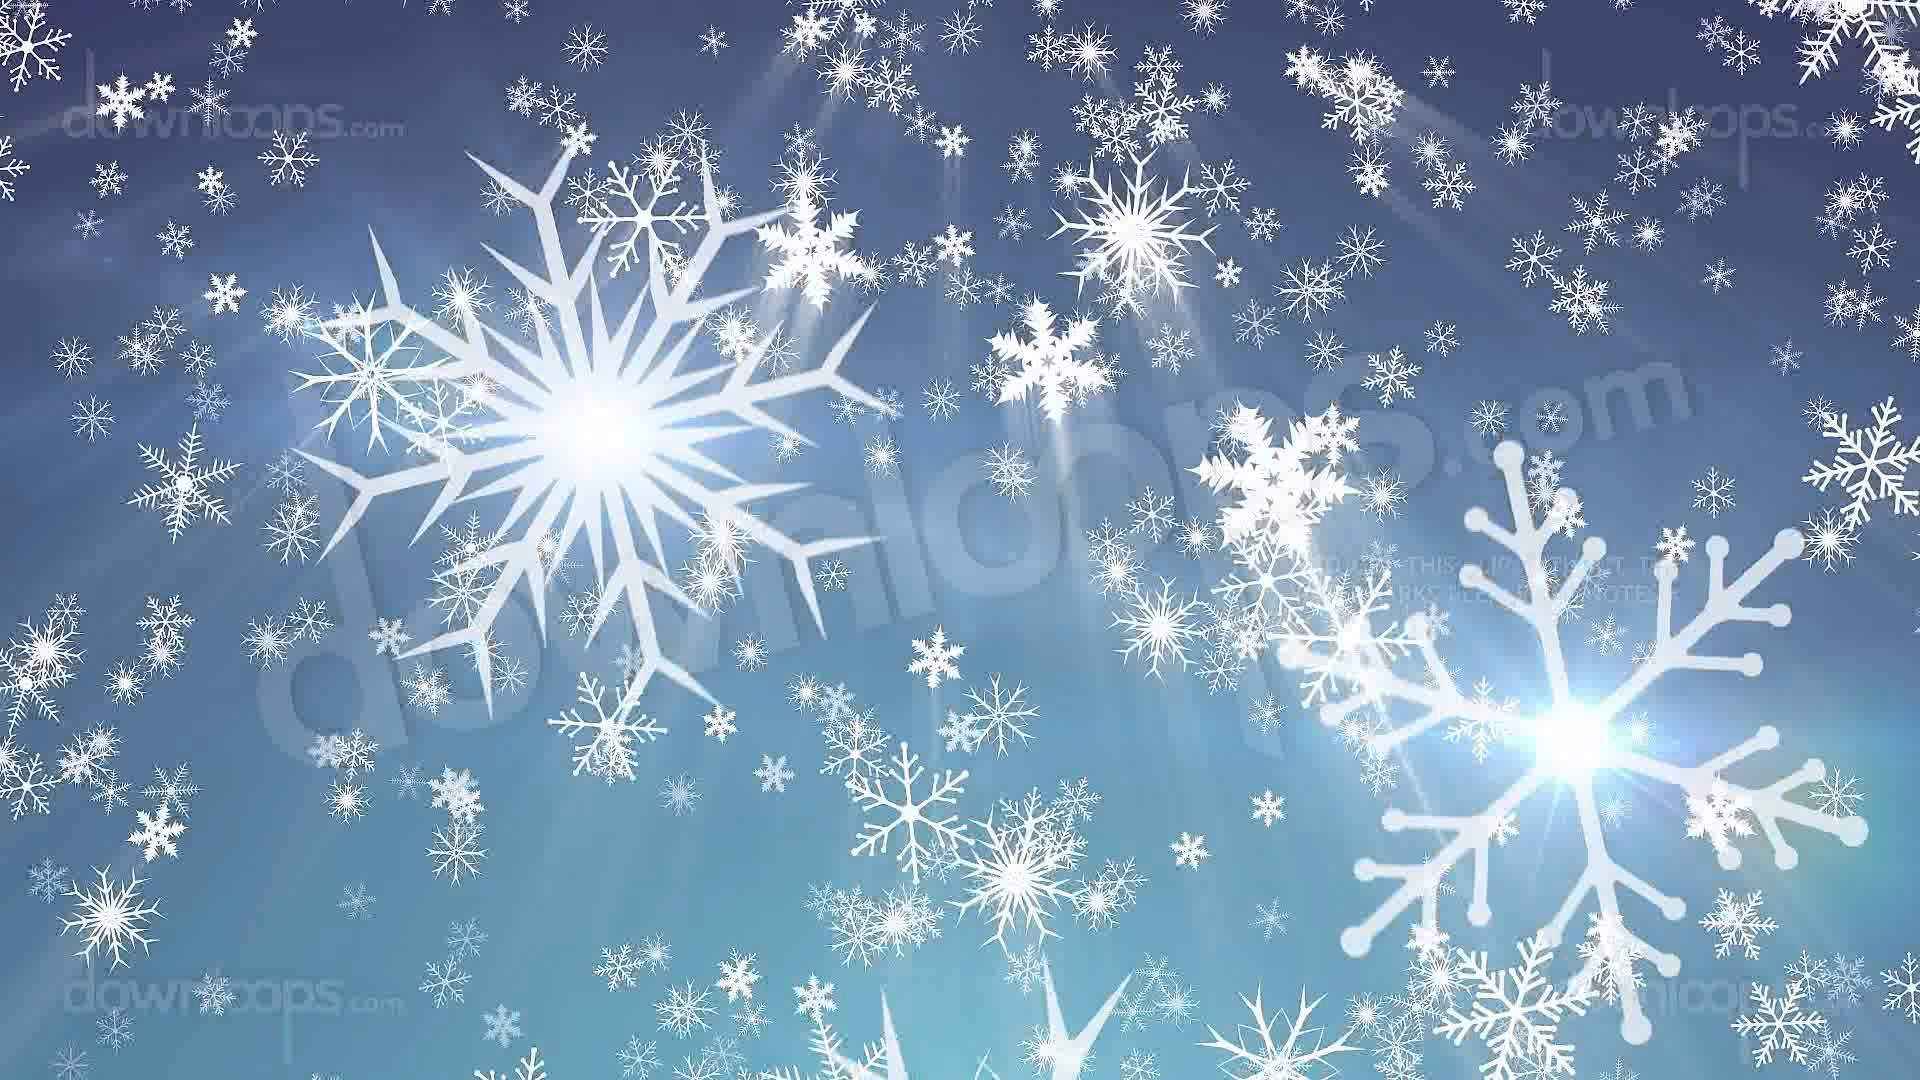 Snowy 1   Snow Christmas Video Loop Animated Motion Background 1920x1080